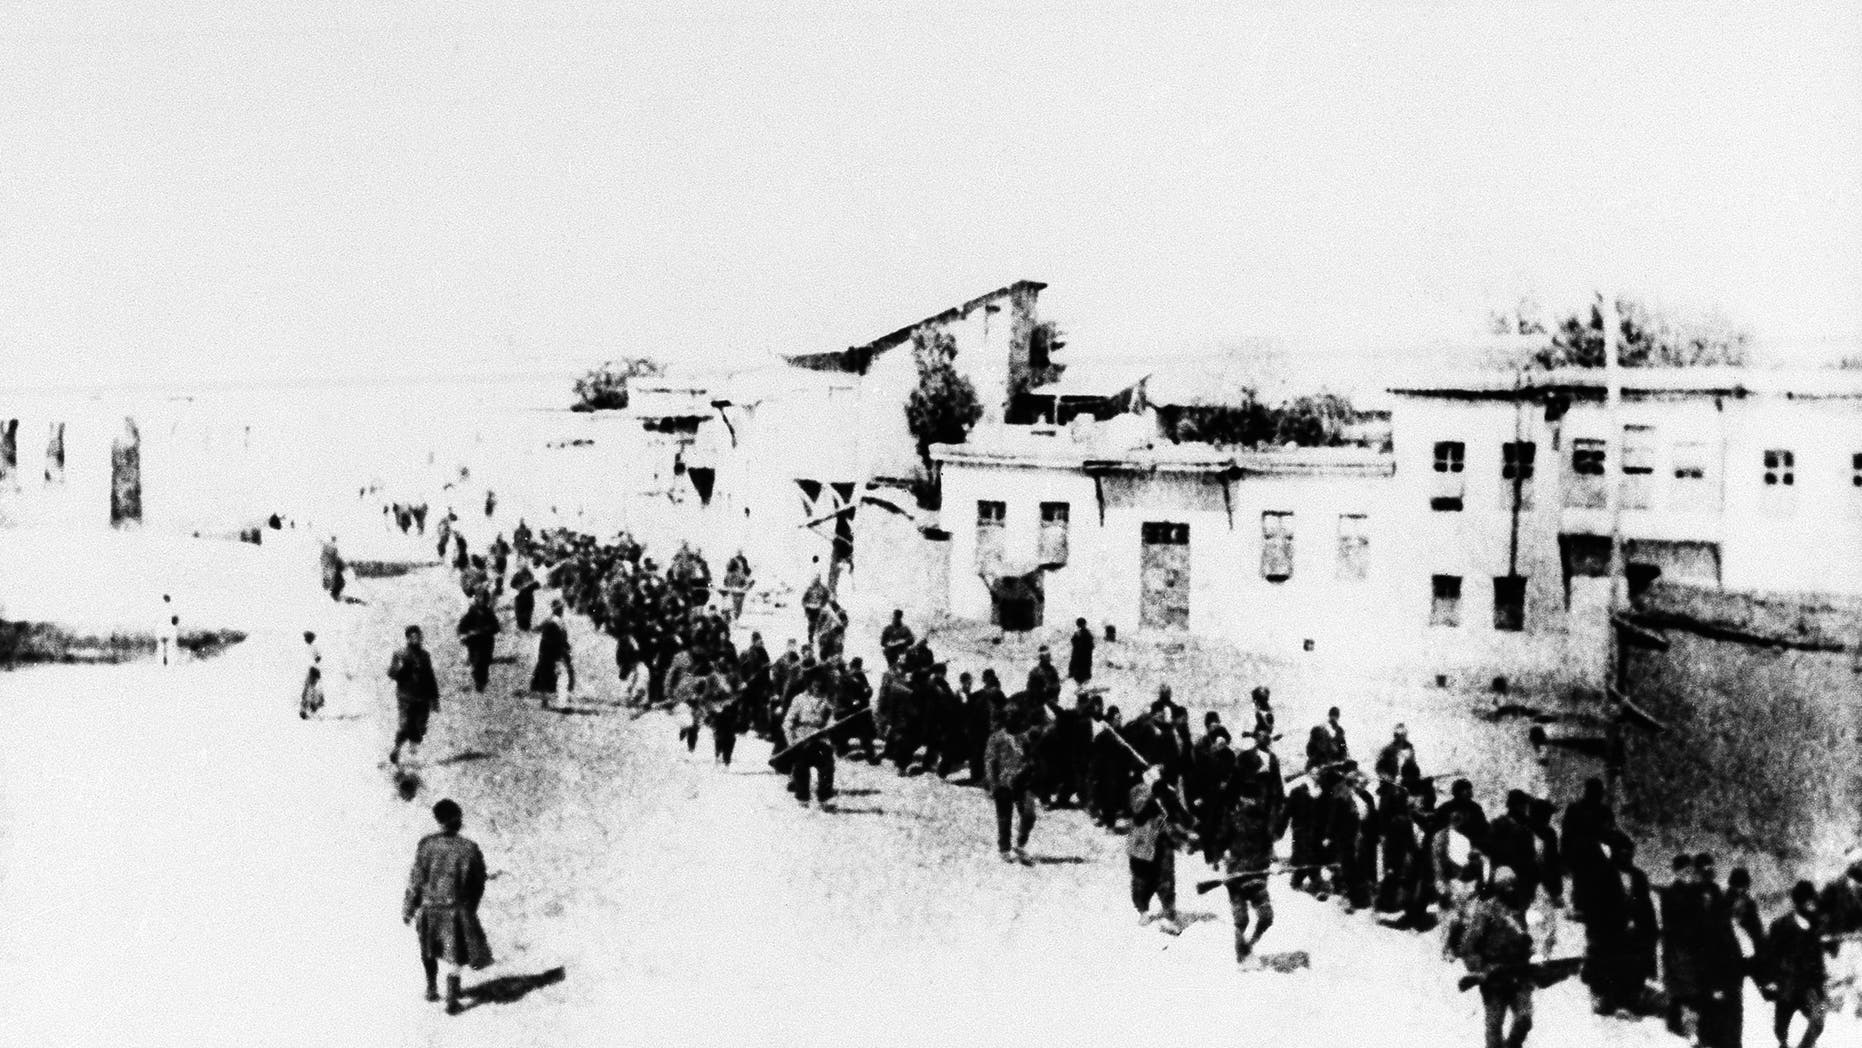 This is the scene in Turkey in 1915 when Armenians were marched long distances and said to have been massacred. (AP)